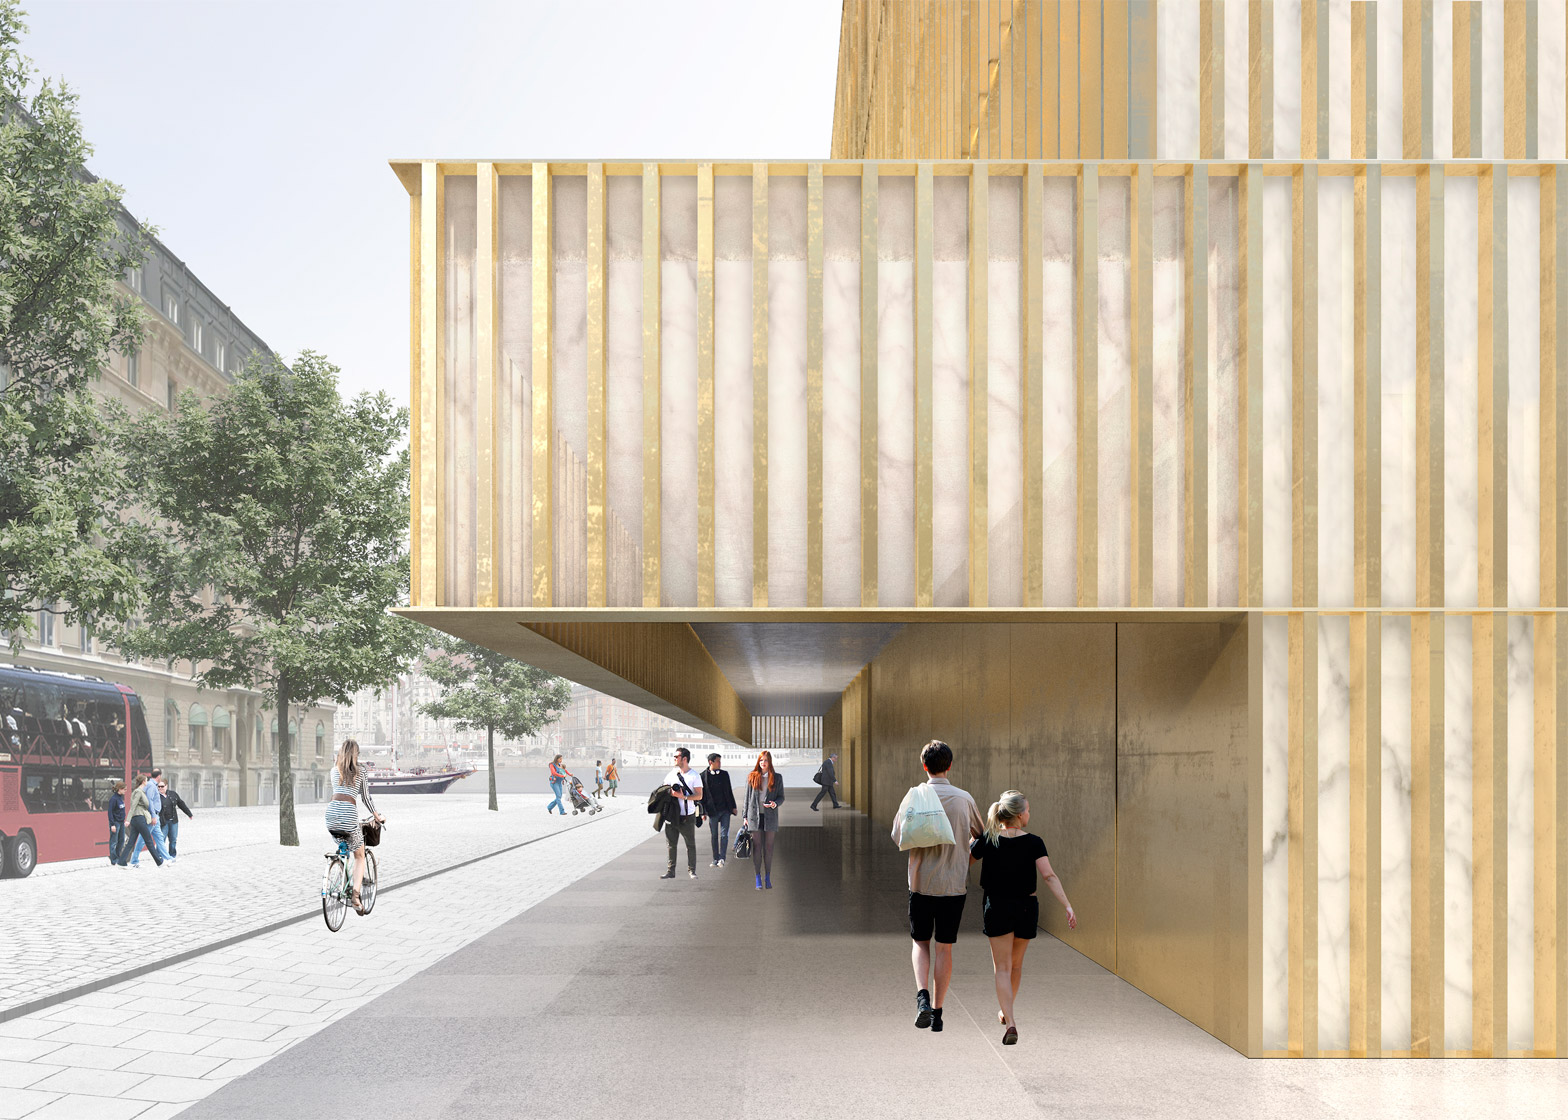 Nobel Center by David Chipperfield